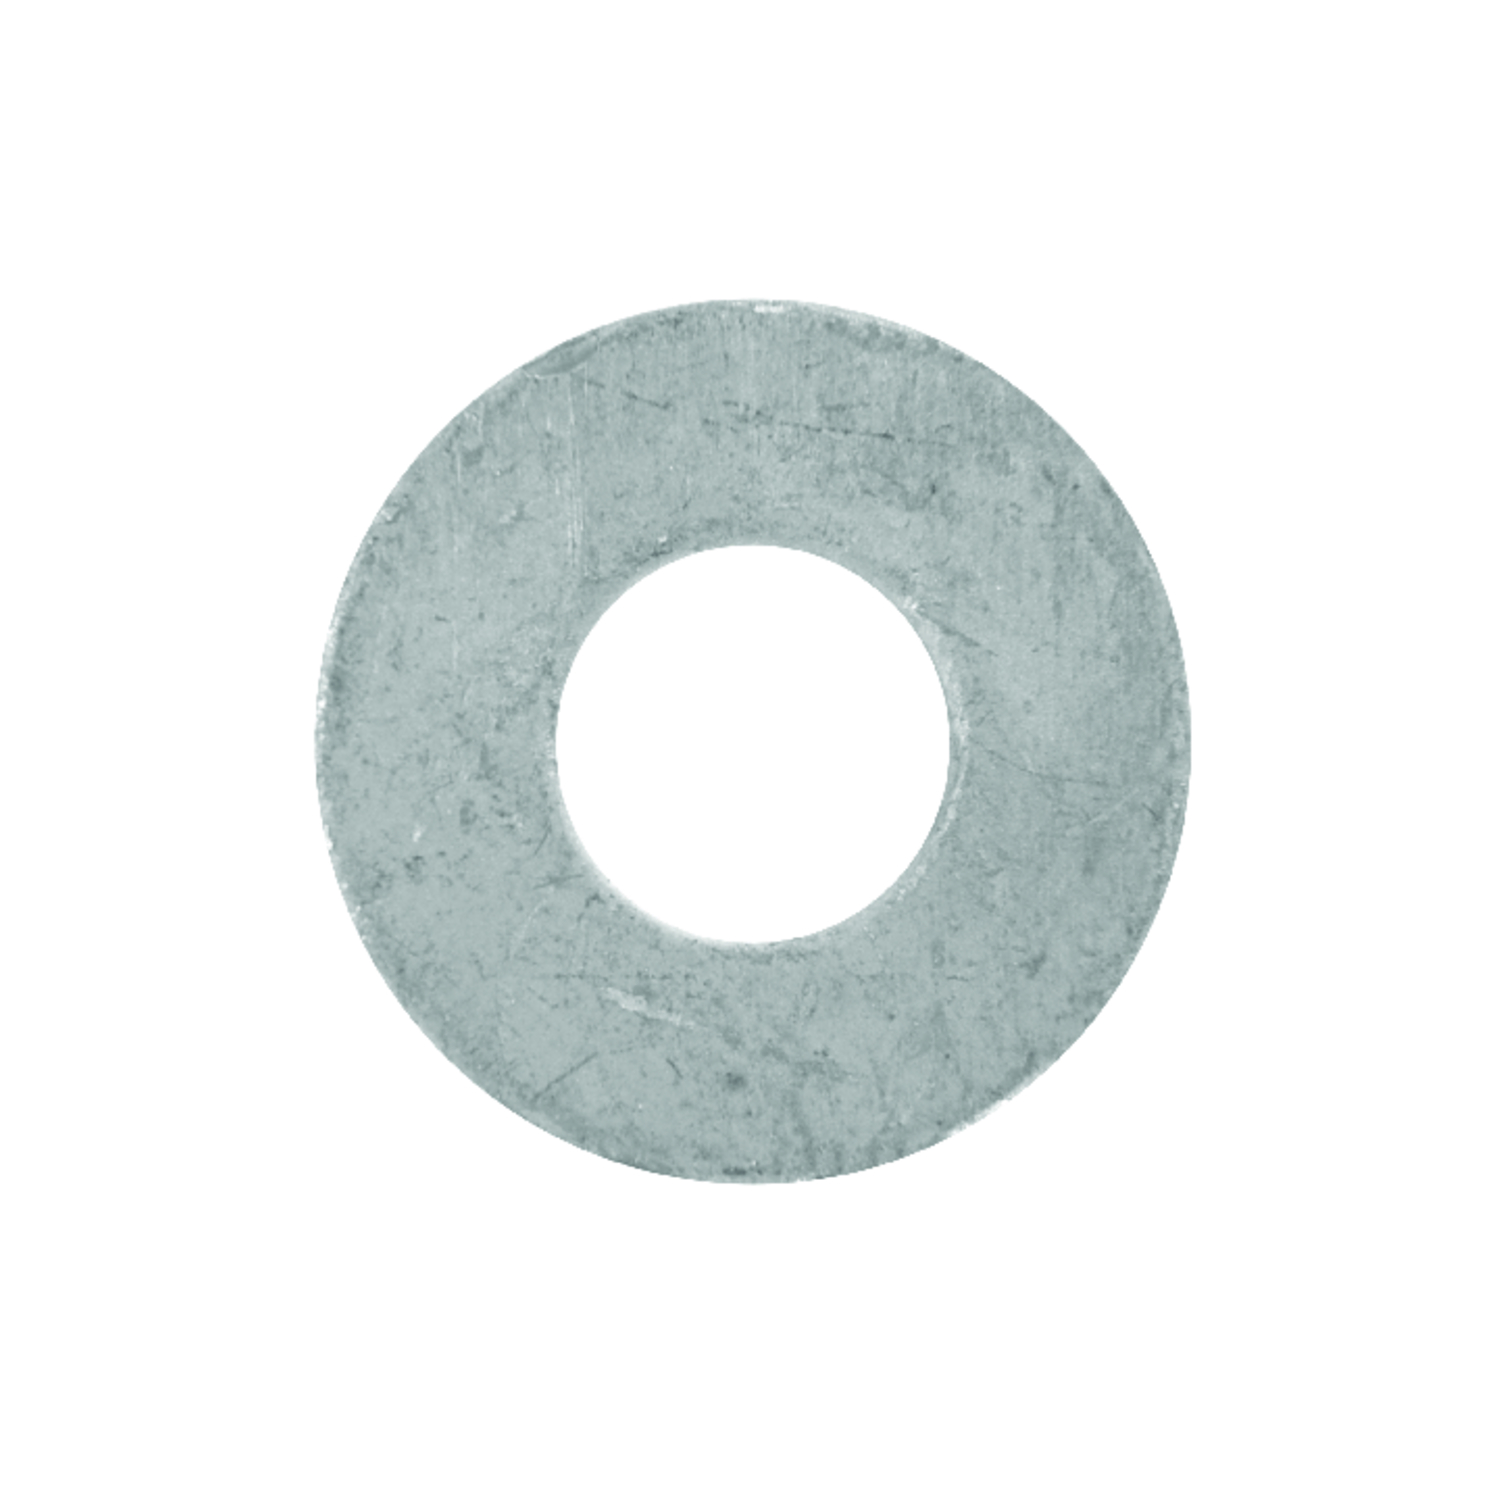 Poly \ Nylon Washers 80 X All Purpose thin colorful washers Washers New